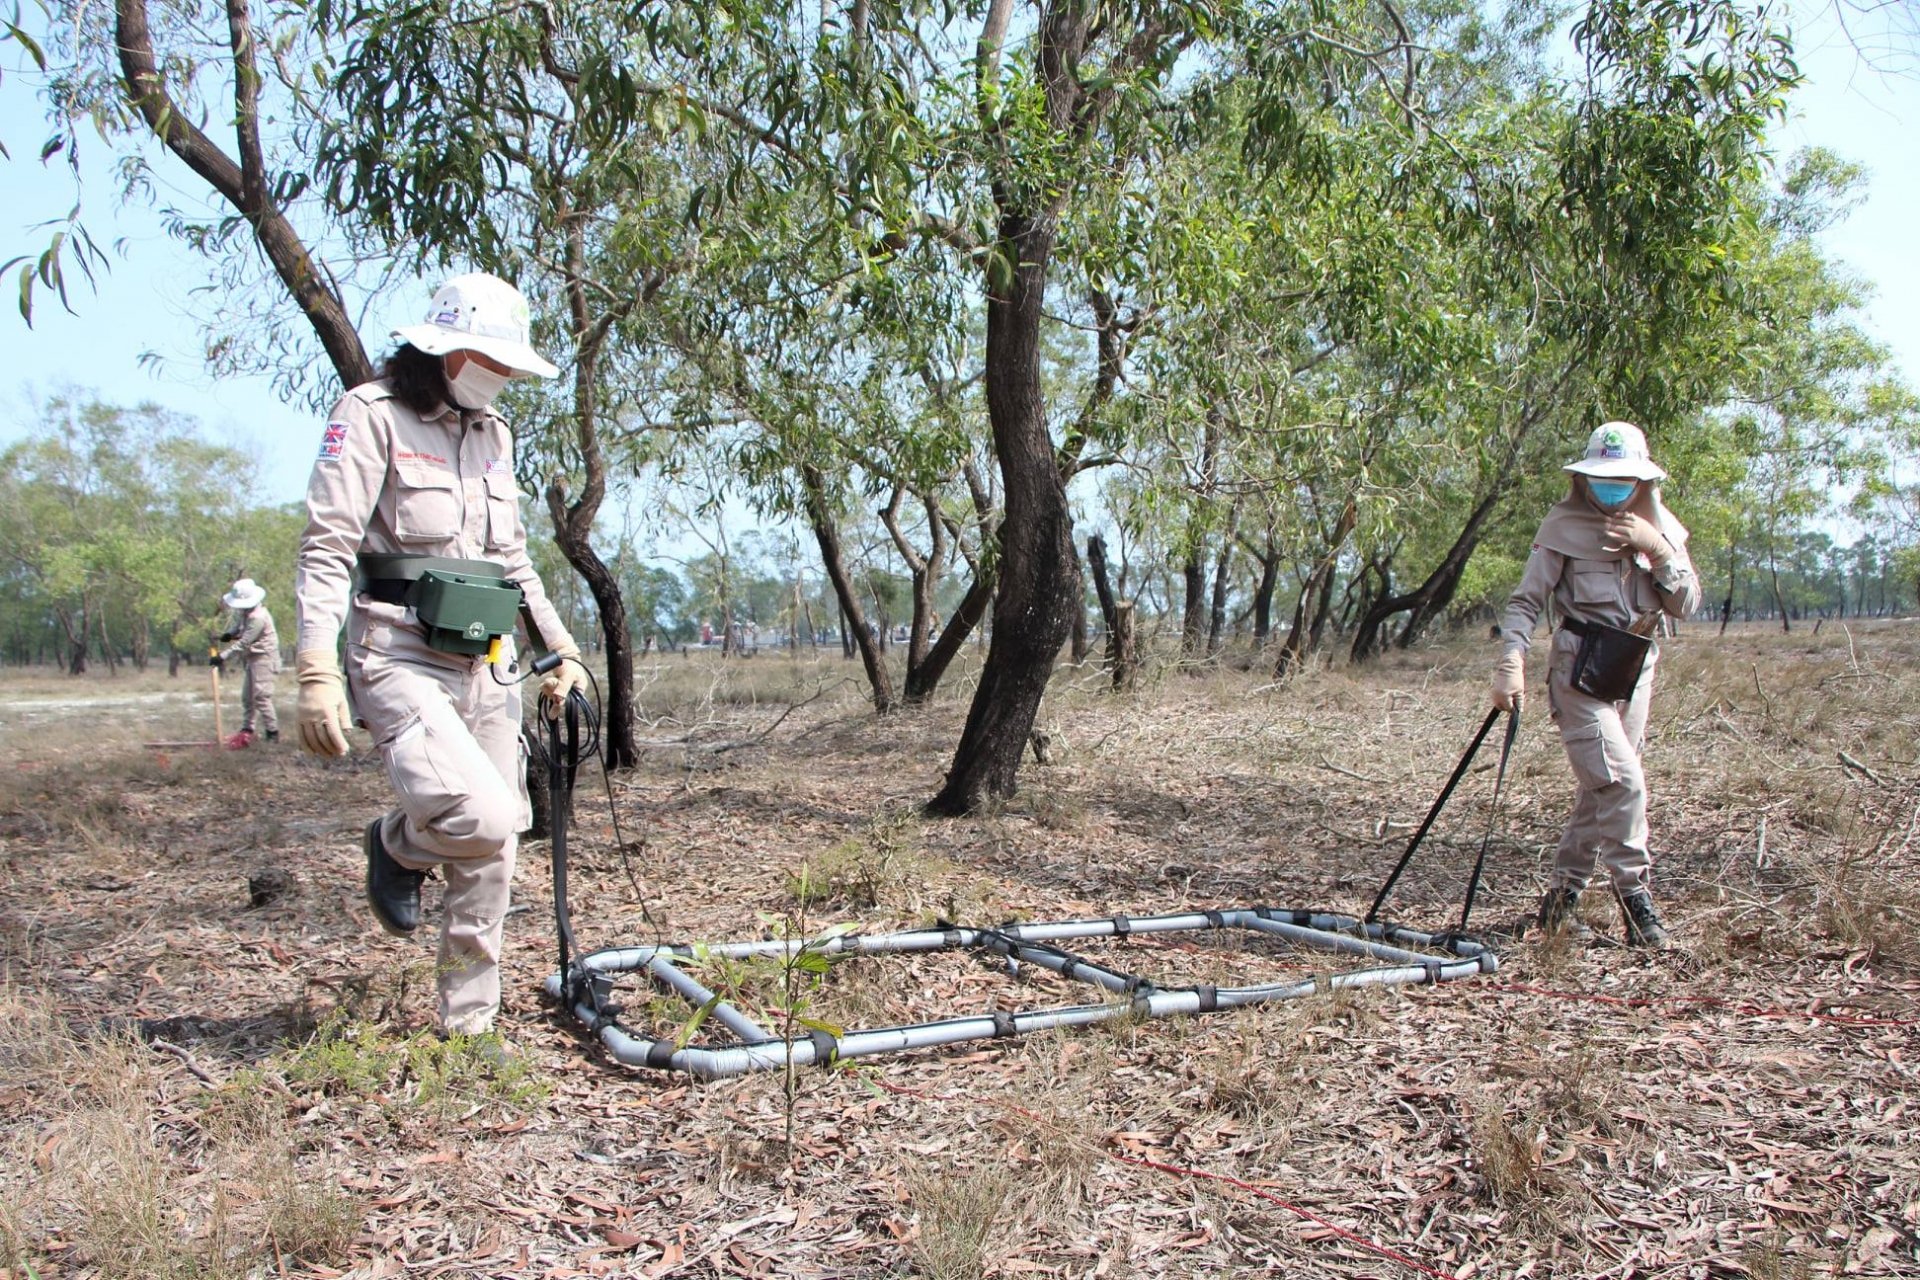 Quang Tri: Over 480 cluster munitions and EXOs safely destroyed